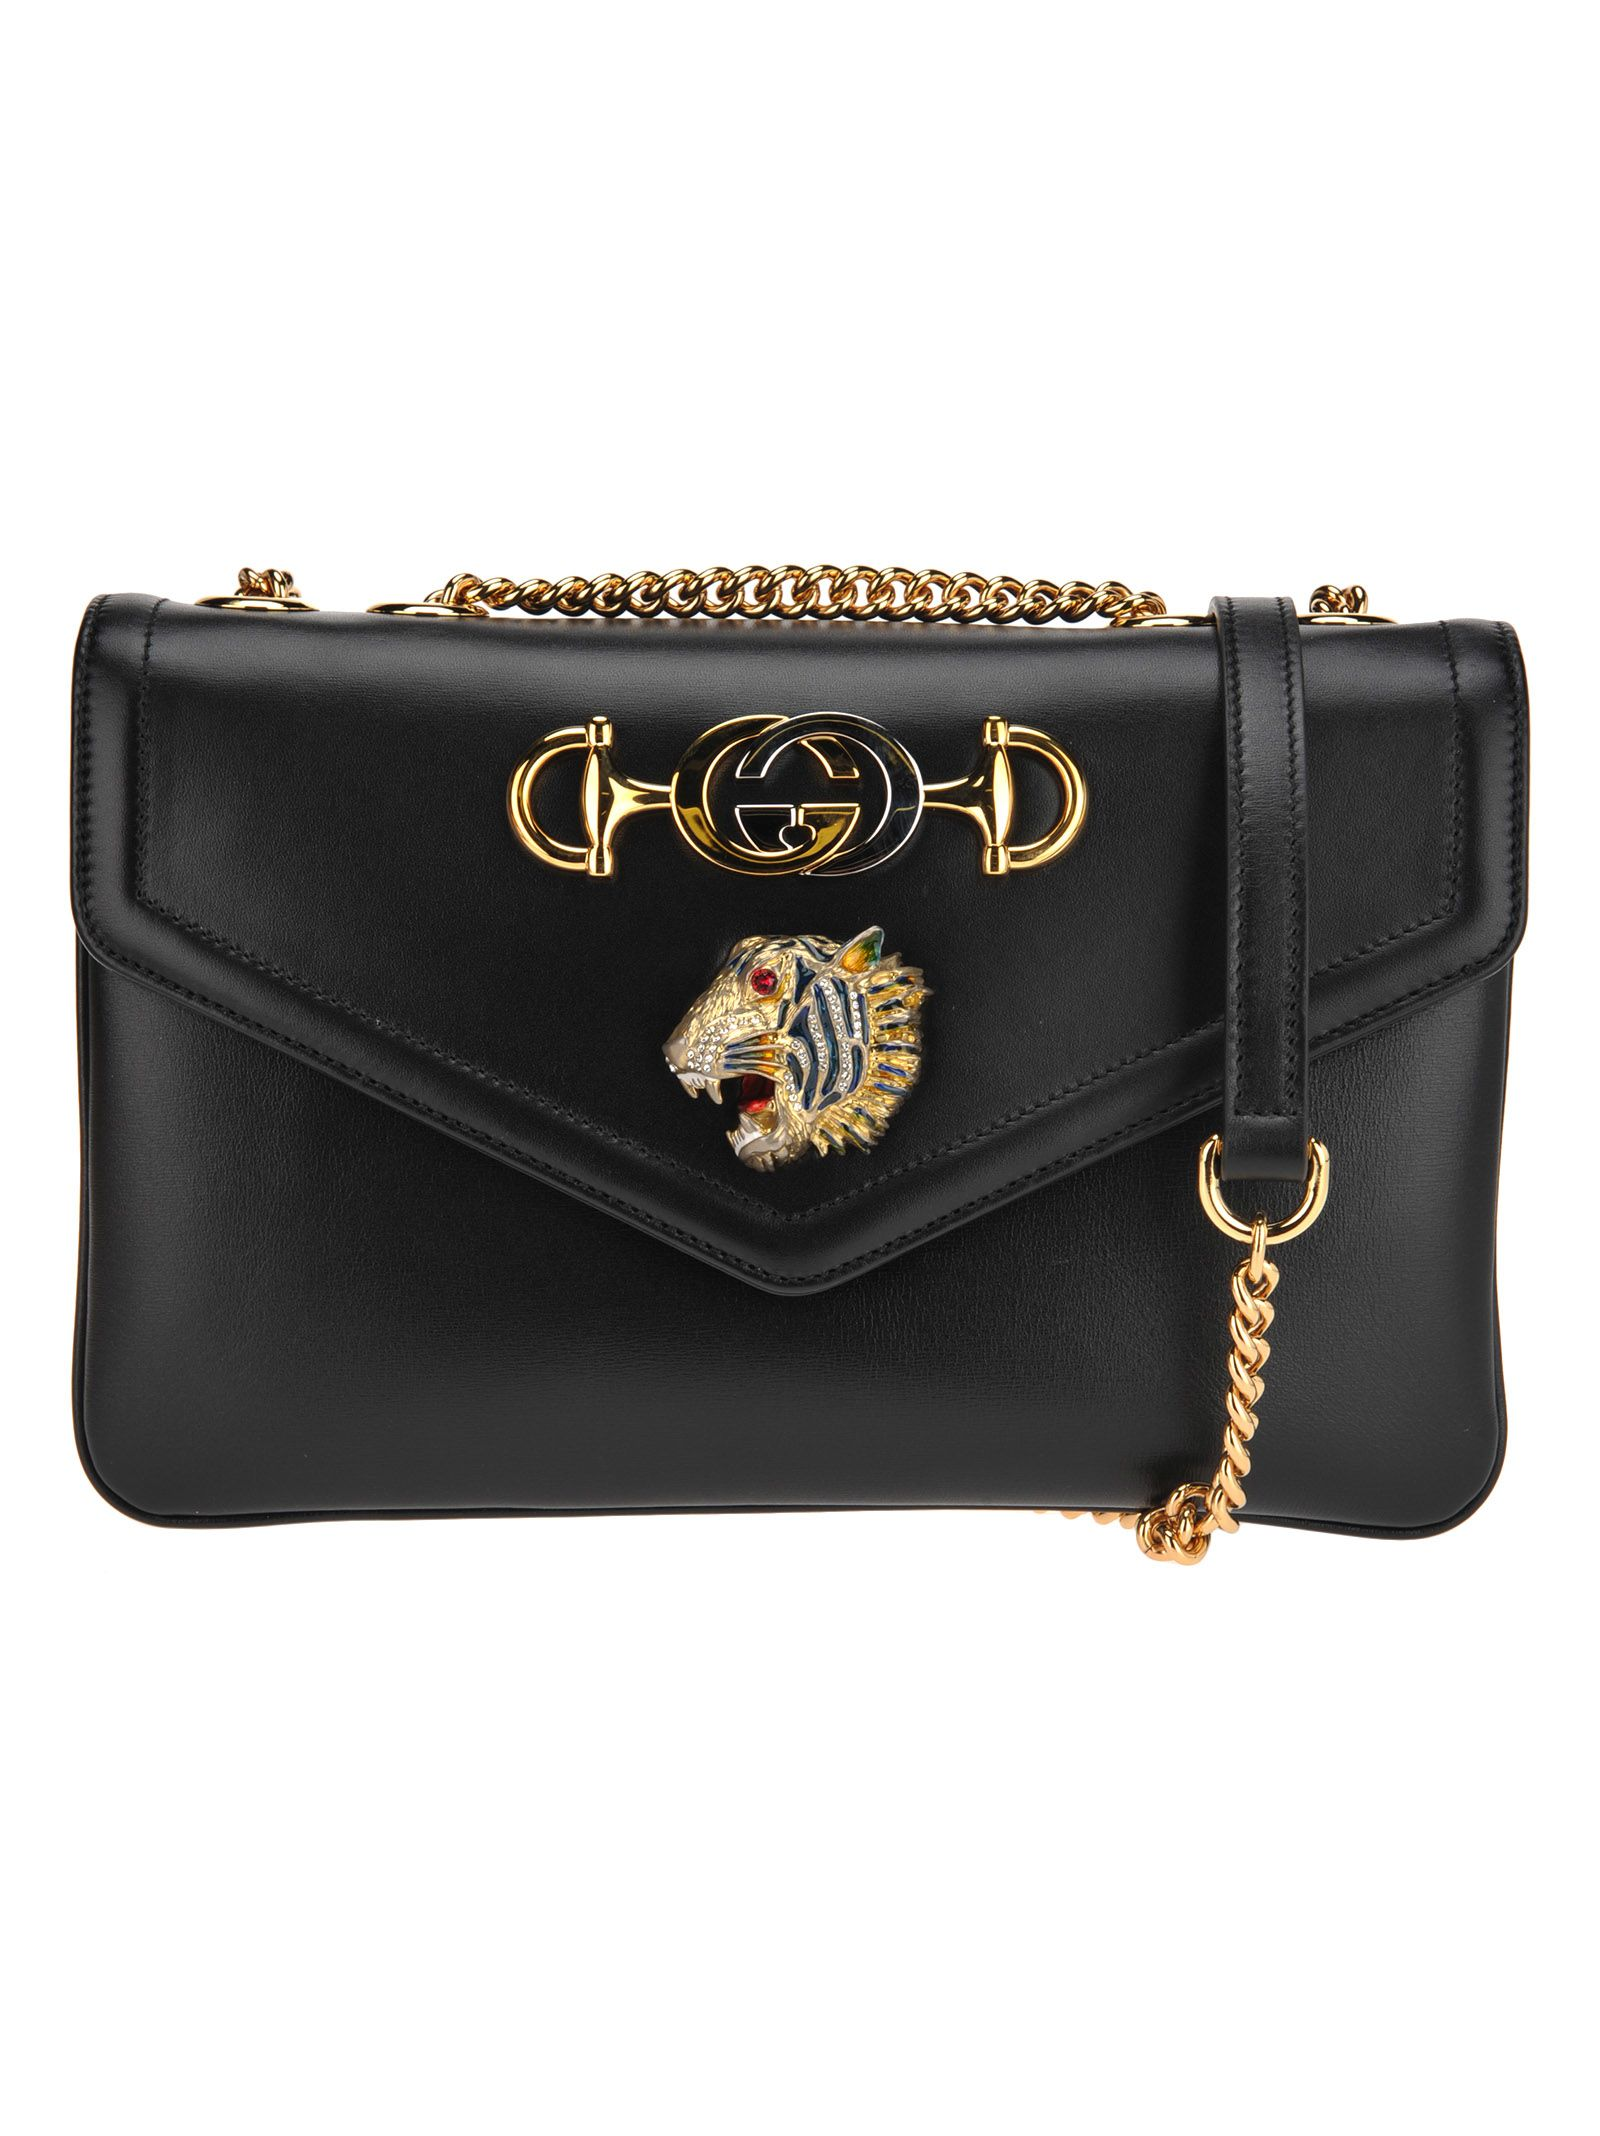 6aeb5678f1f1 Gucci Gucci Small Shoulder Bag Rajah - BLACK - 10923820